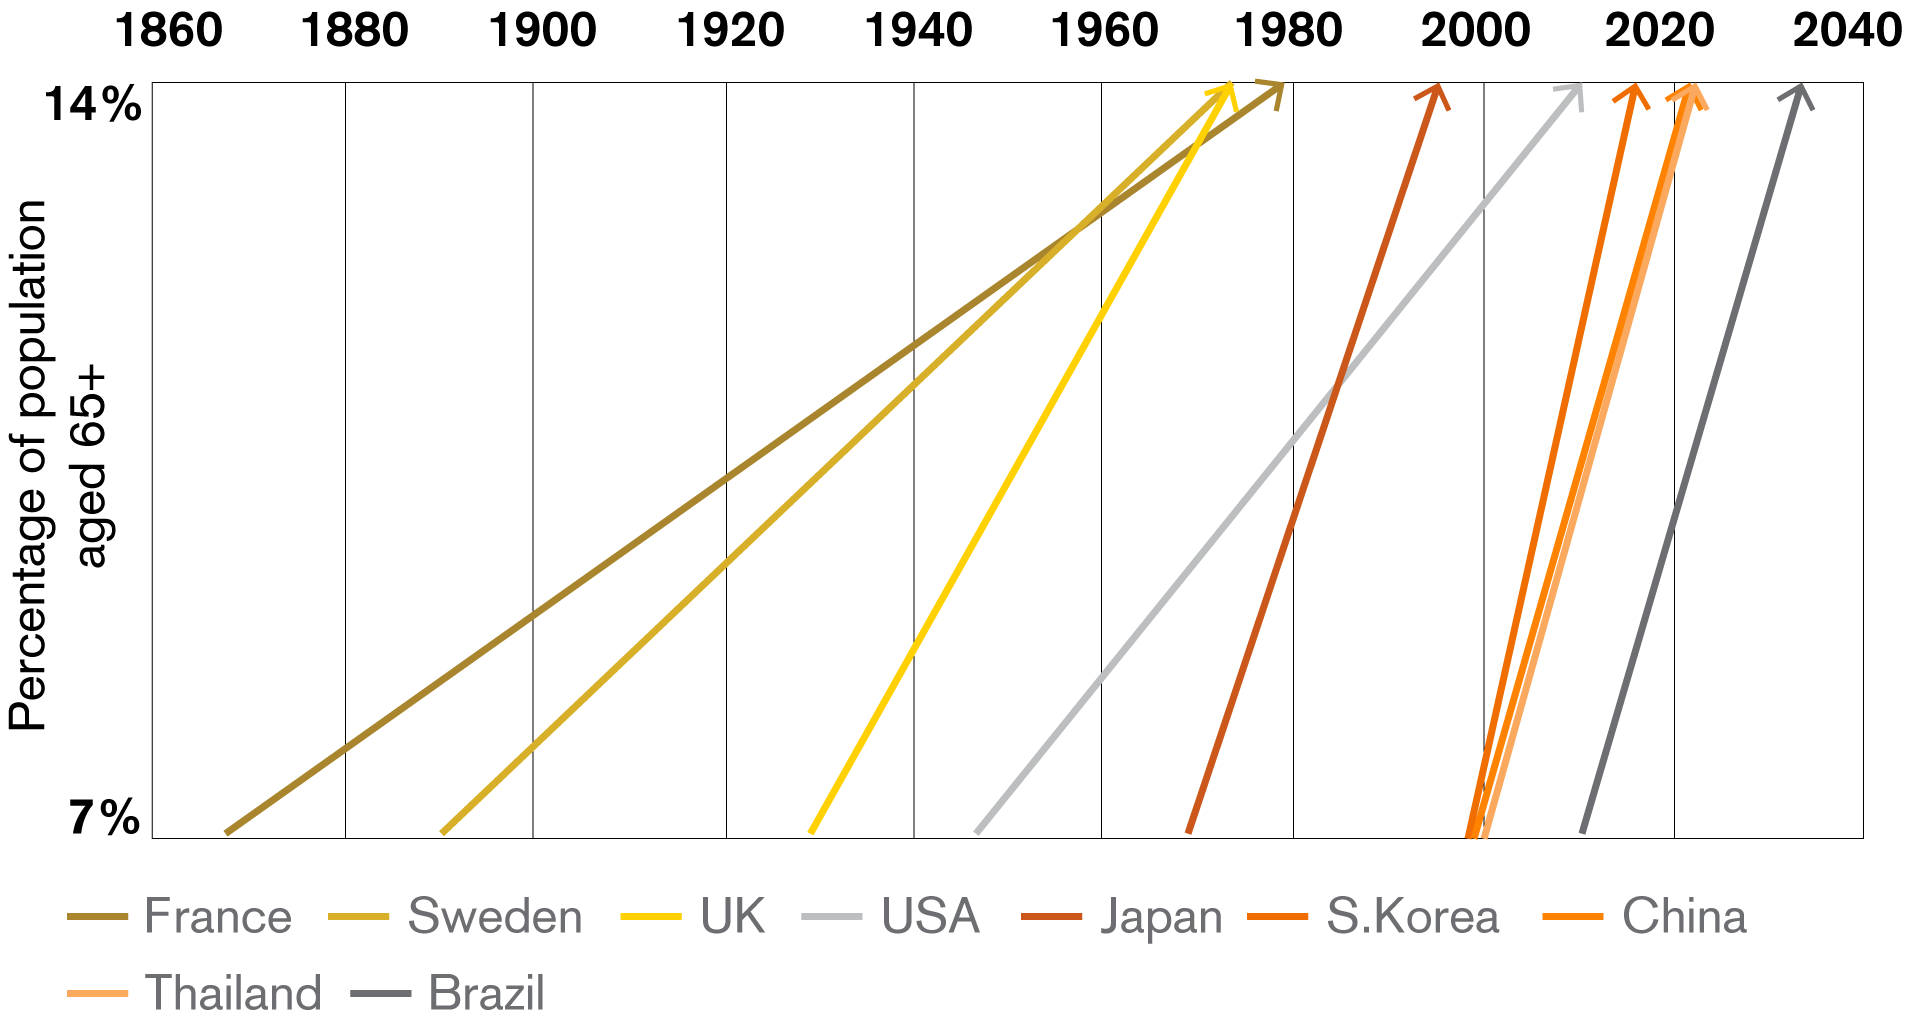 Speed of population aging in selected countries